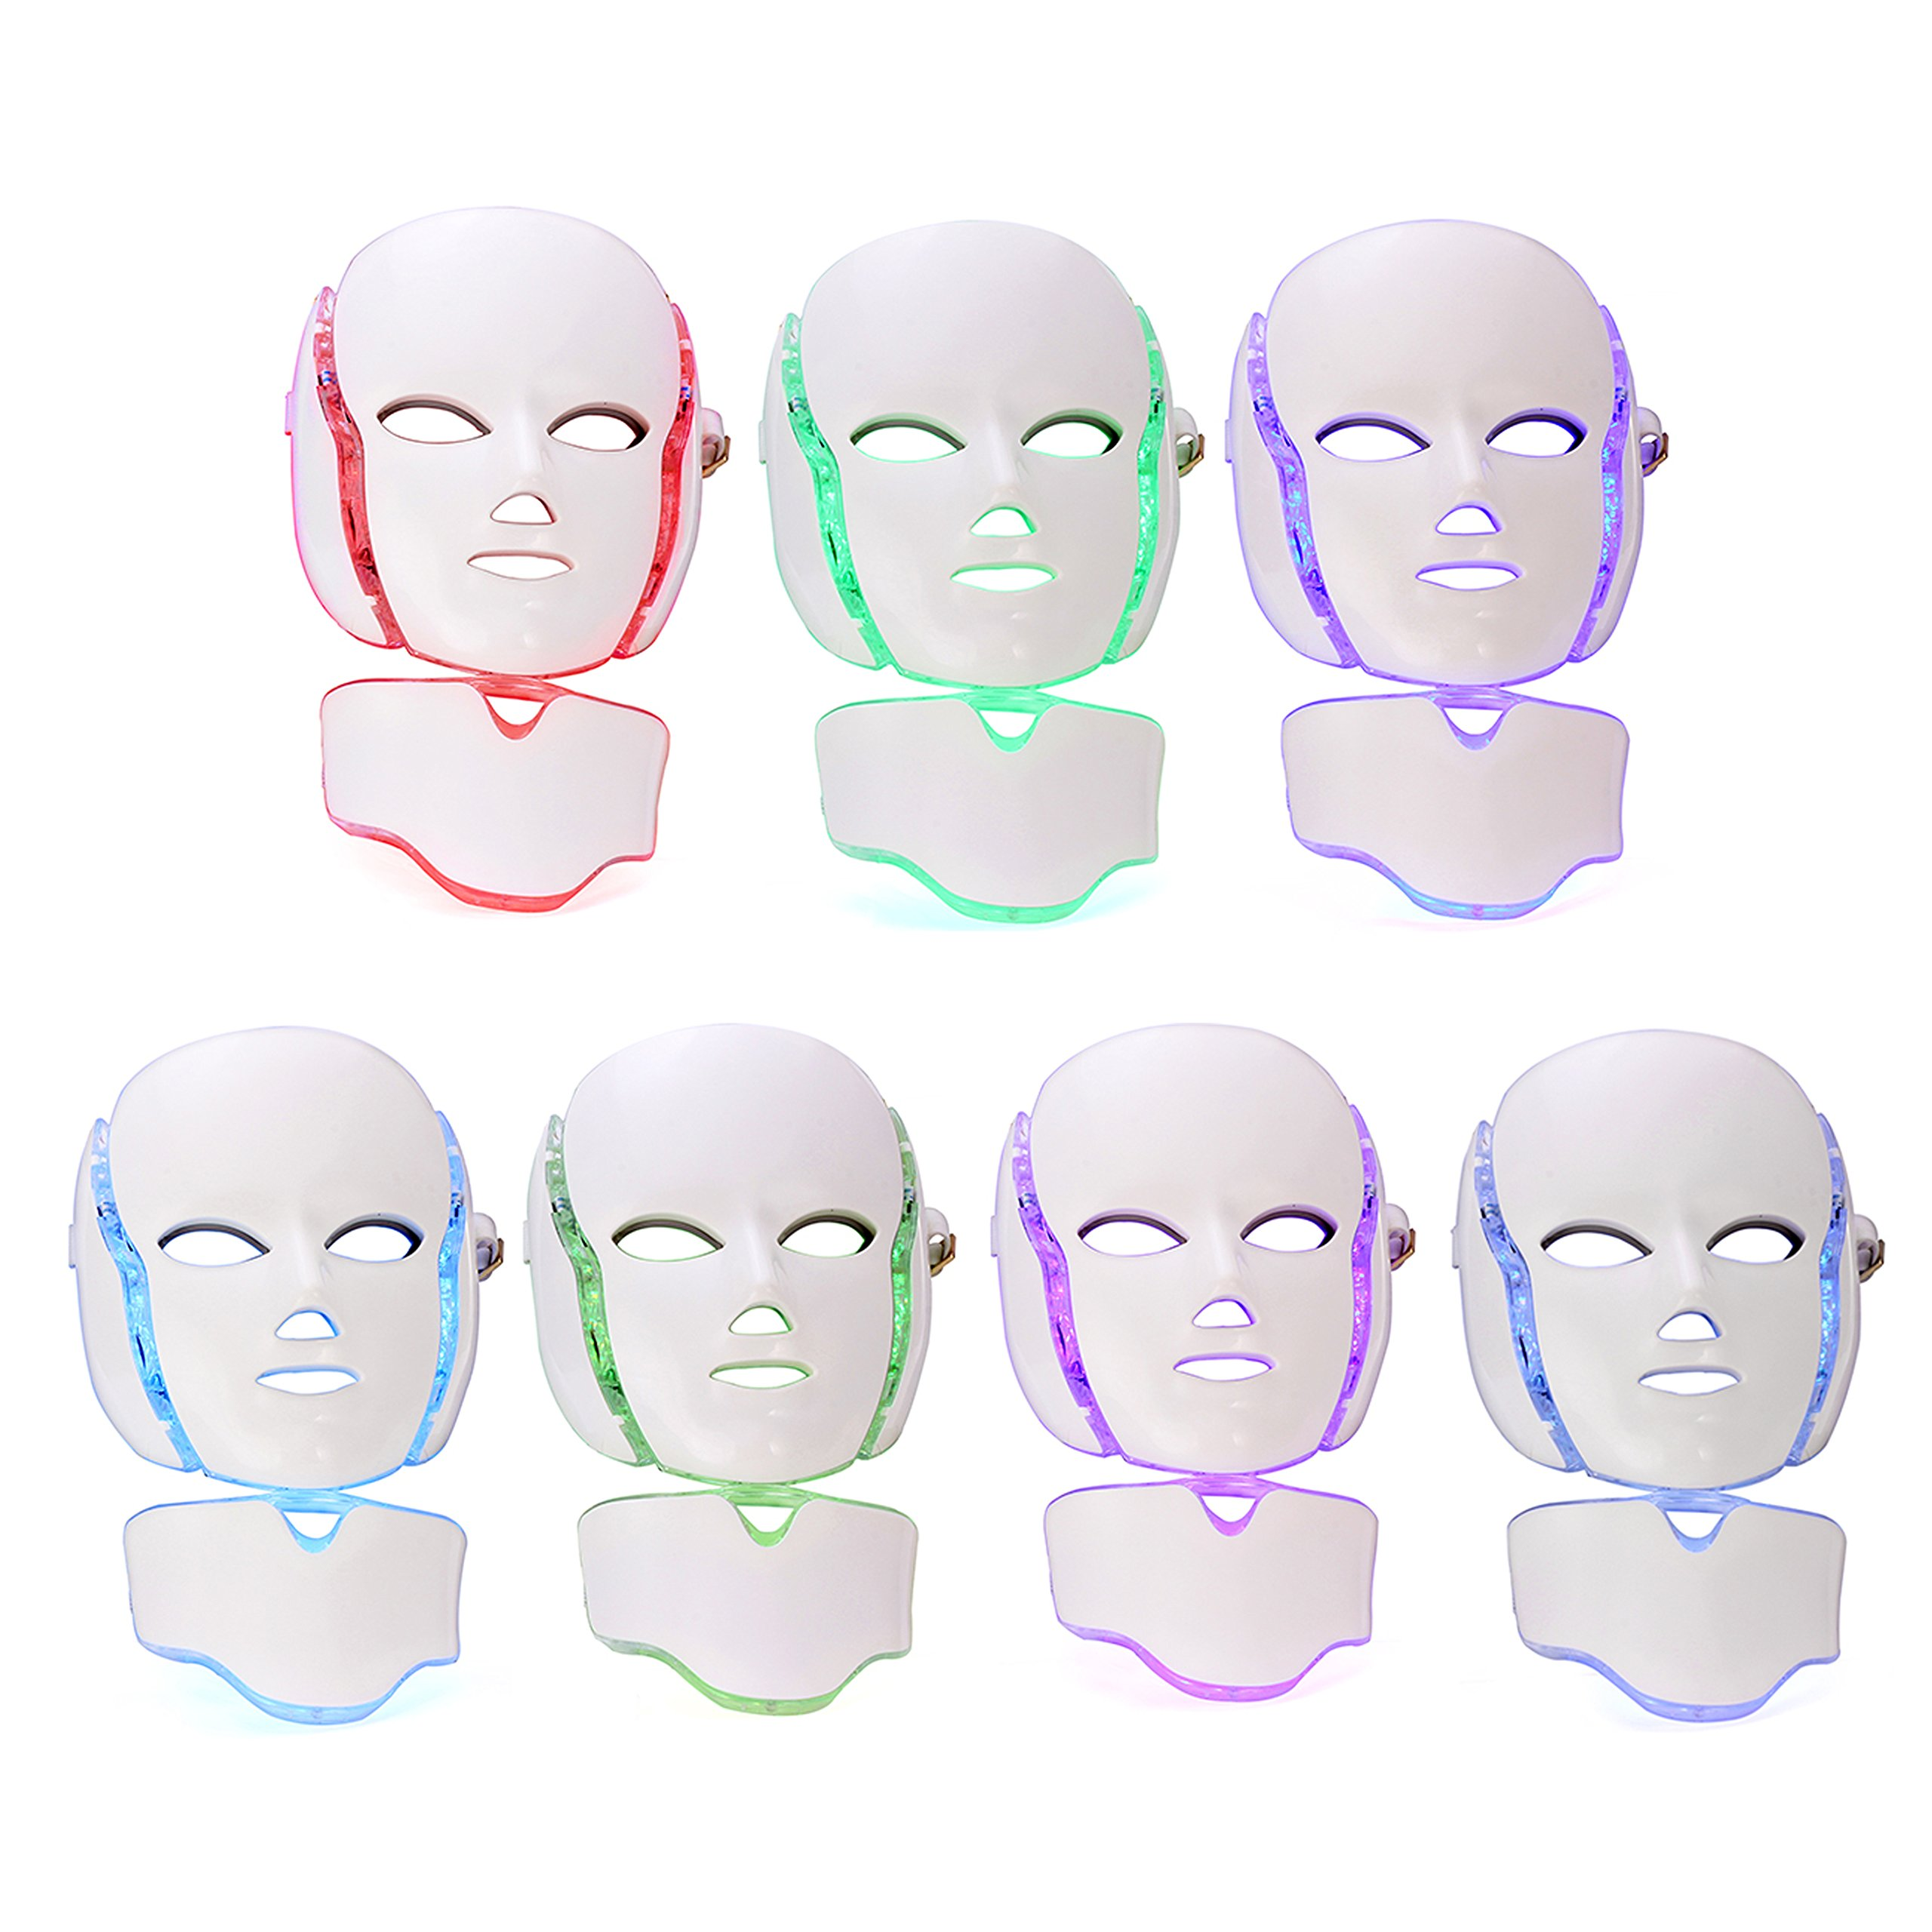 LED Photon Therapy Mask with 7 Color Light Treatment | Face Beauty Skin Care Phototherapy Mask by GlobalCareMarket (With Neck)